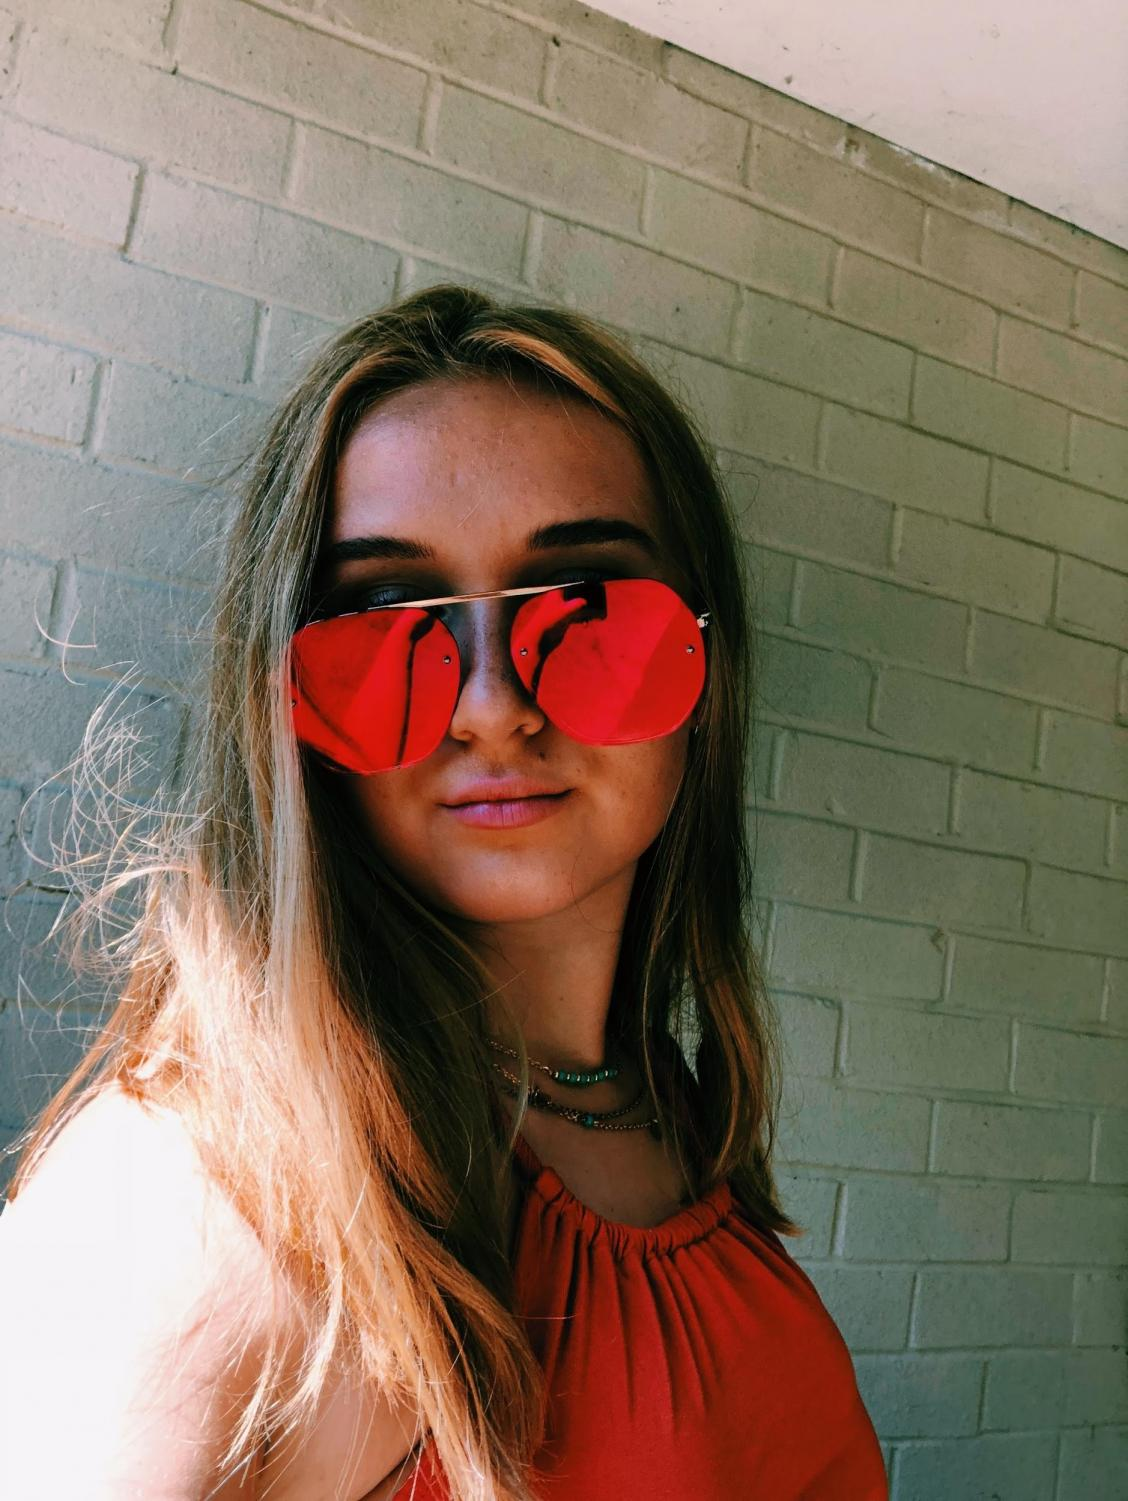 Junior Holly Darby tops off her outfit with a bold pair of red sunglasses. Photo courtesy of Holly Darby